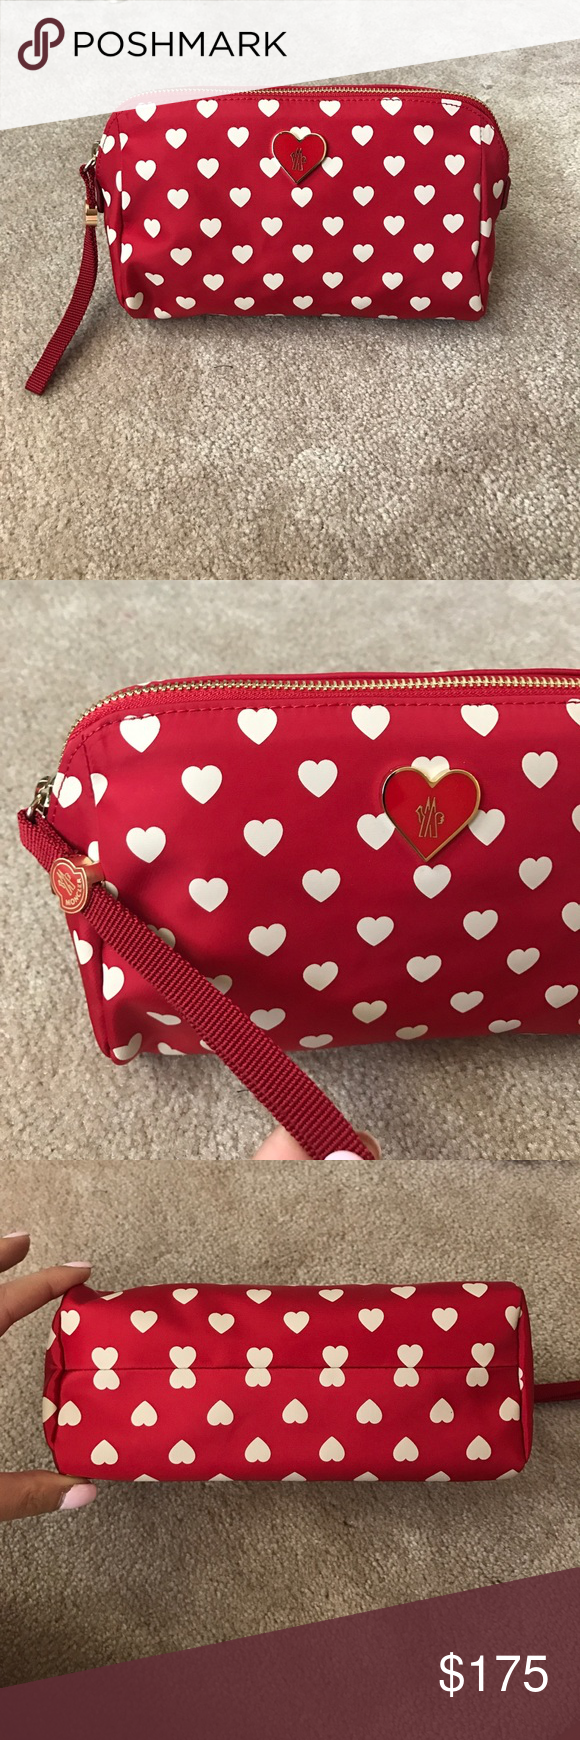 4d28c1dbcfde Moncler Heart Makeup Bag Brand new in dust bag with original tags. Adorable  heart print. Perfect size for everyday use. Moncler Bags Cosmetic Bags &  Cases